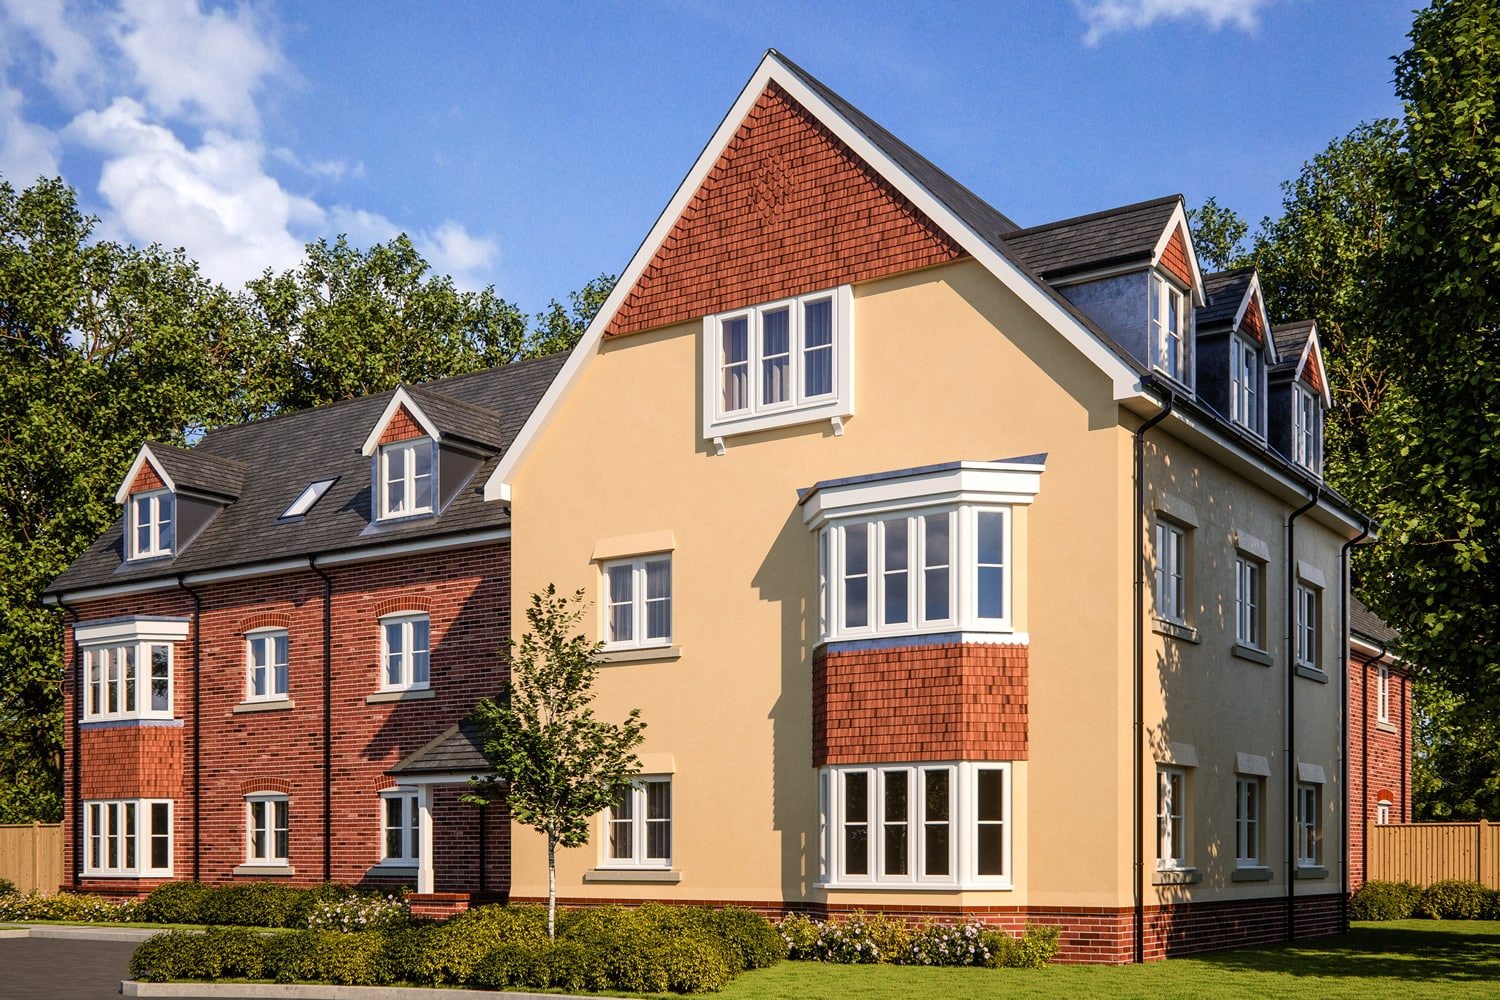 cove-homes-rudgard-court-two-bedroom-apartment-silent-garden-liphook-hampshire